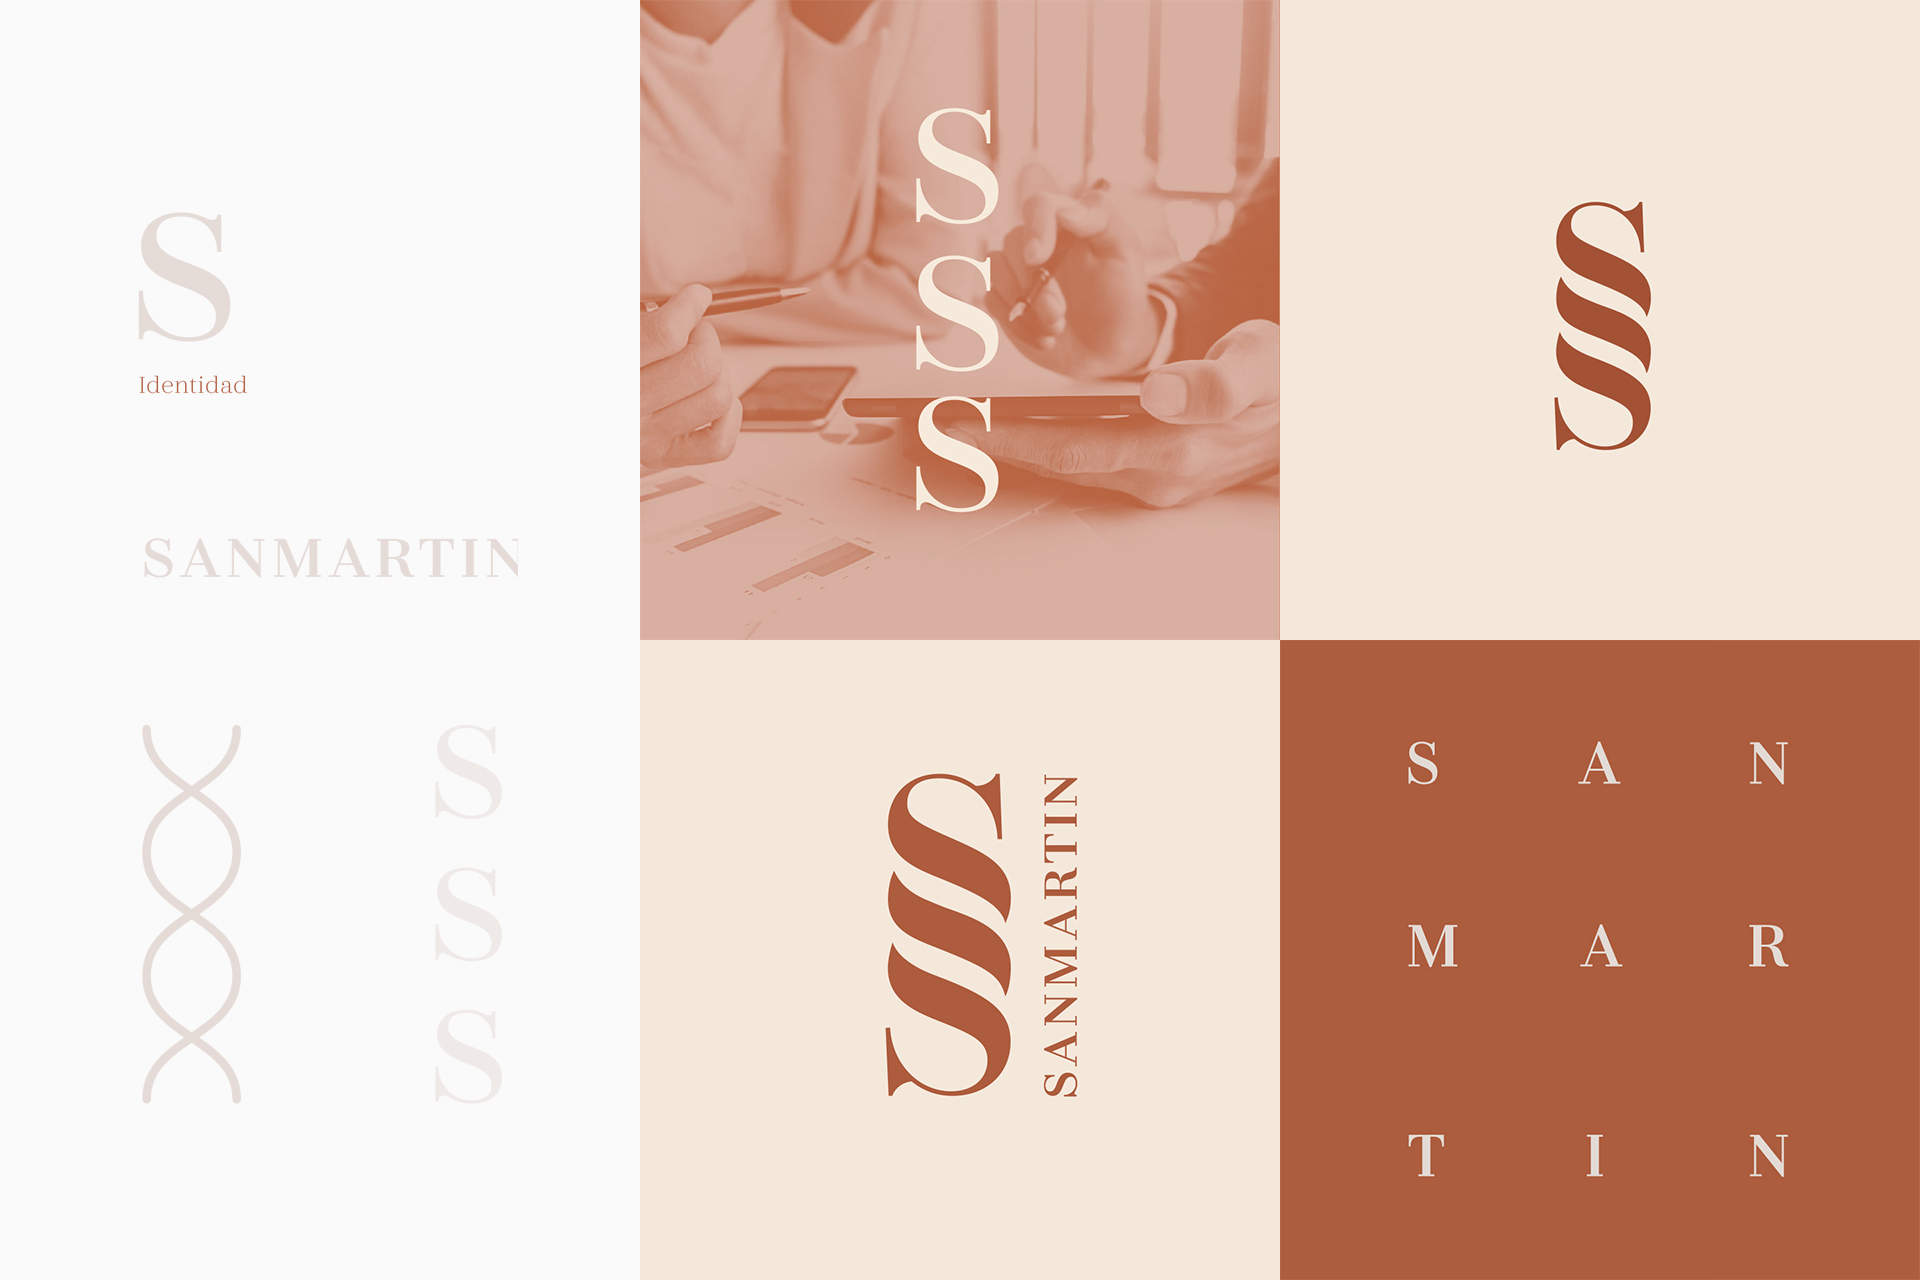 SANMARTIN by Barceló estudio - Creative Work - $i